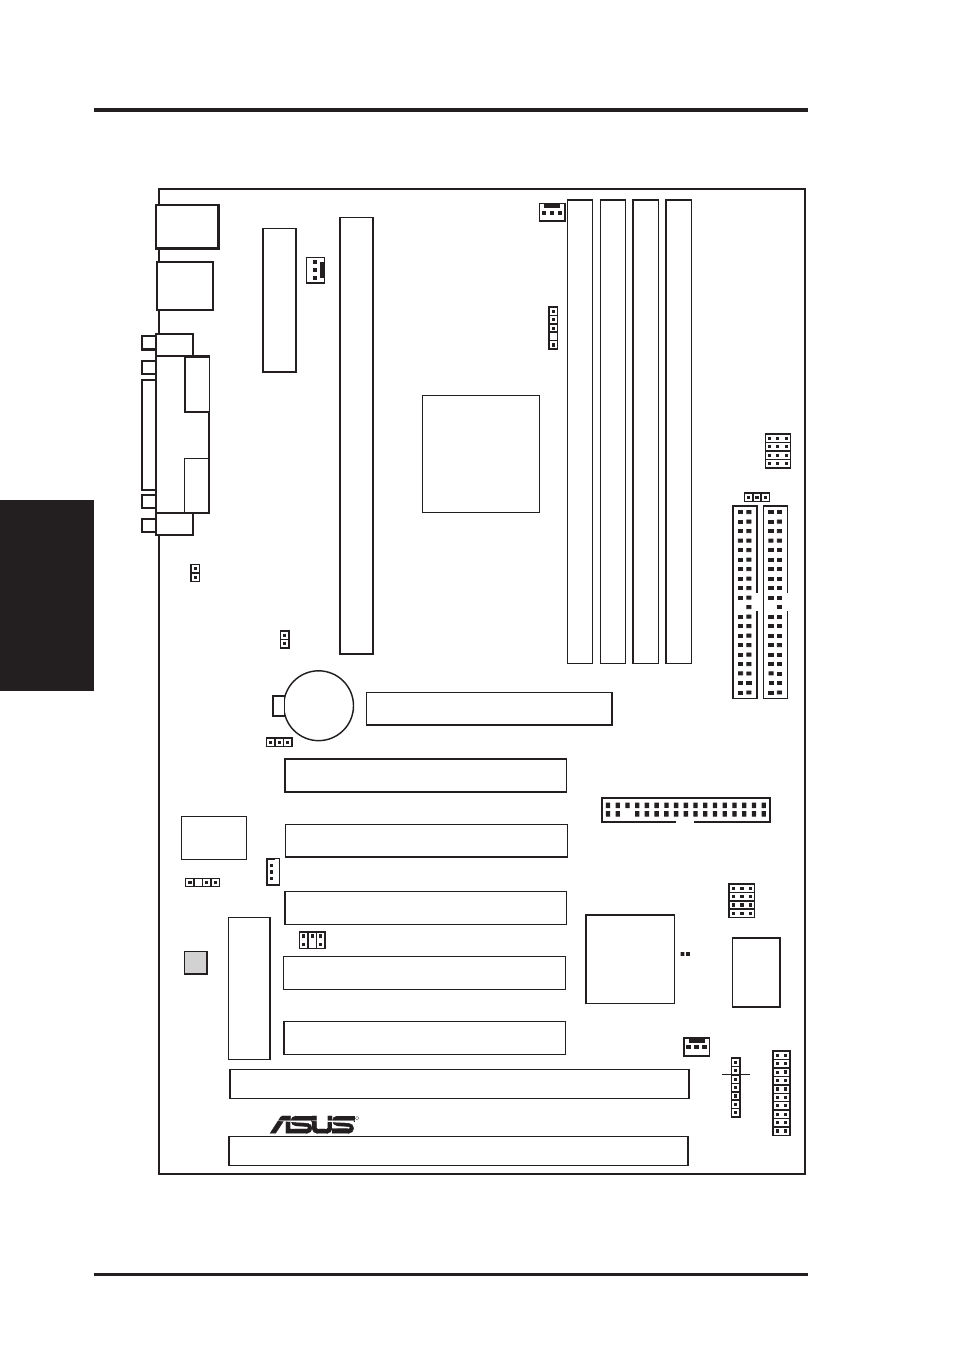 medium resolution of atx motherboard layout atx motherboard diagram 3 wiring diagram page atx motherboard diagram 3